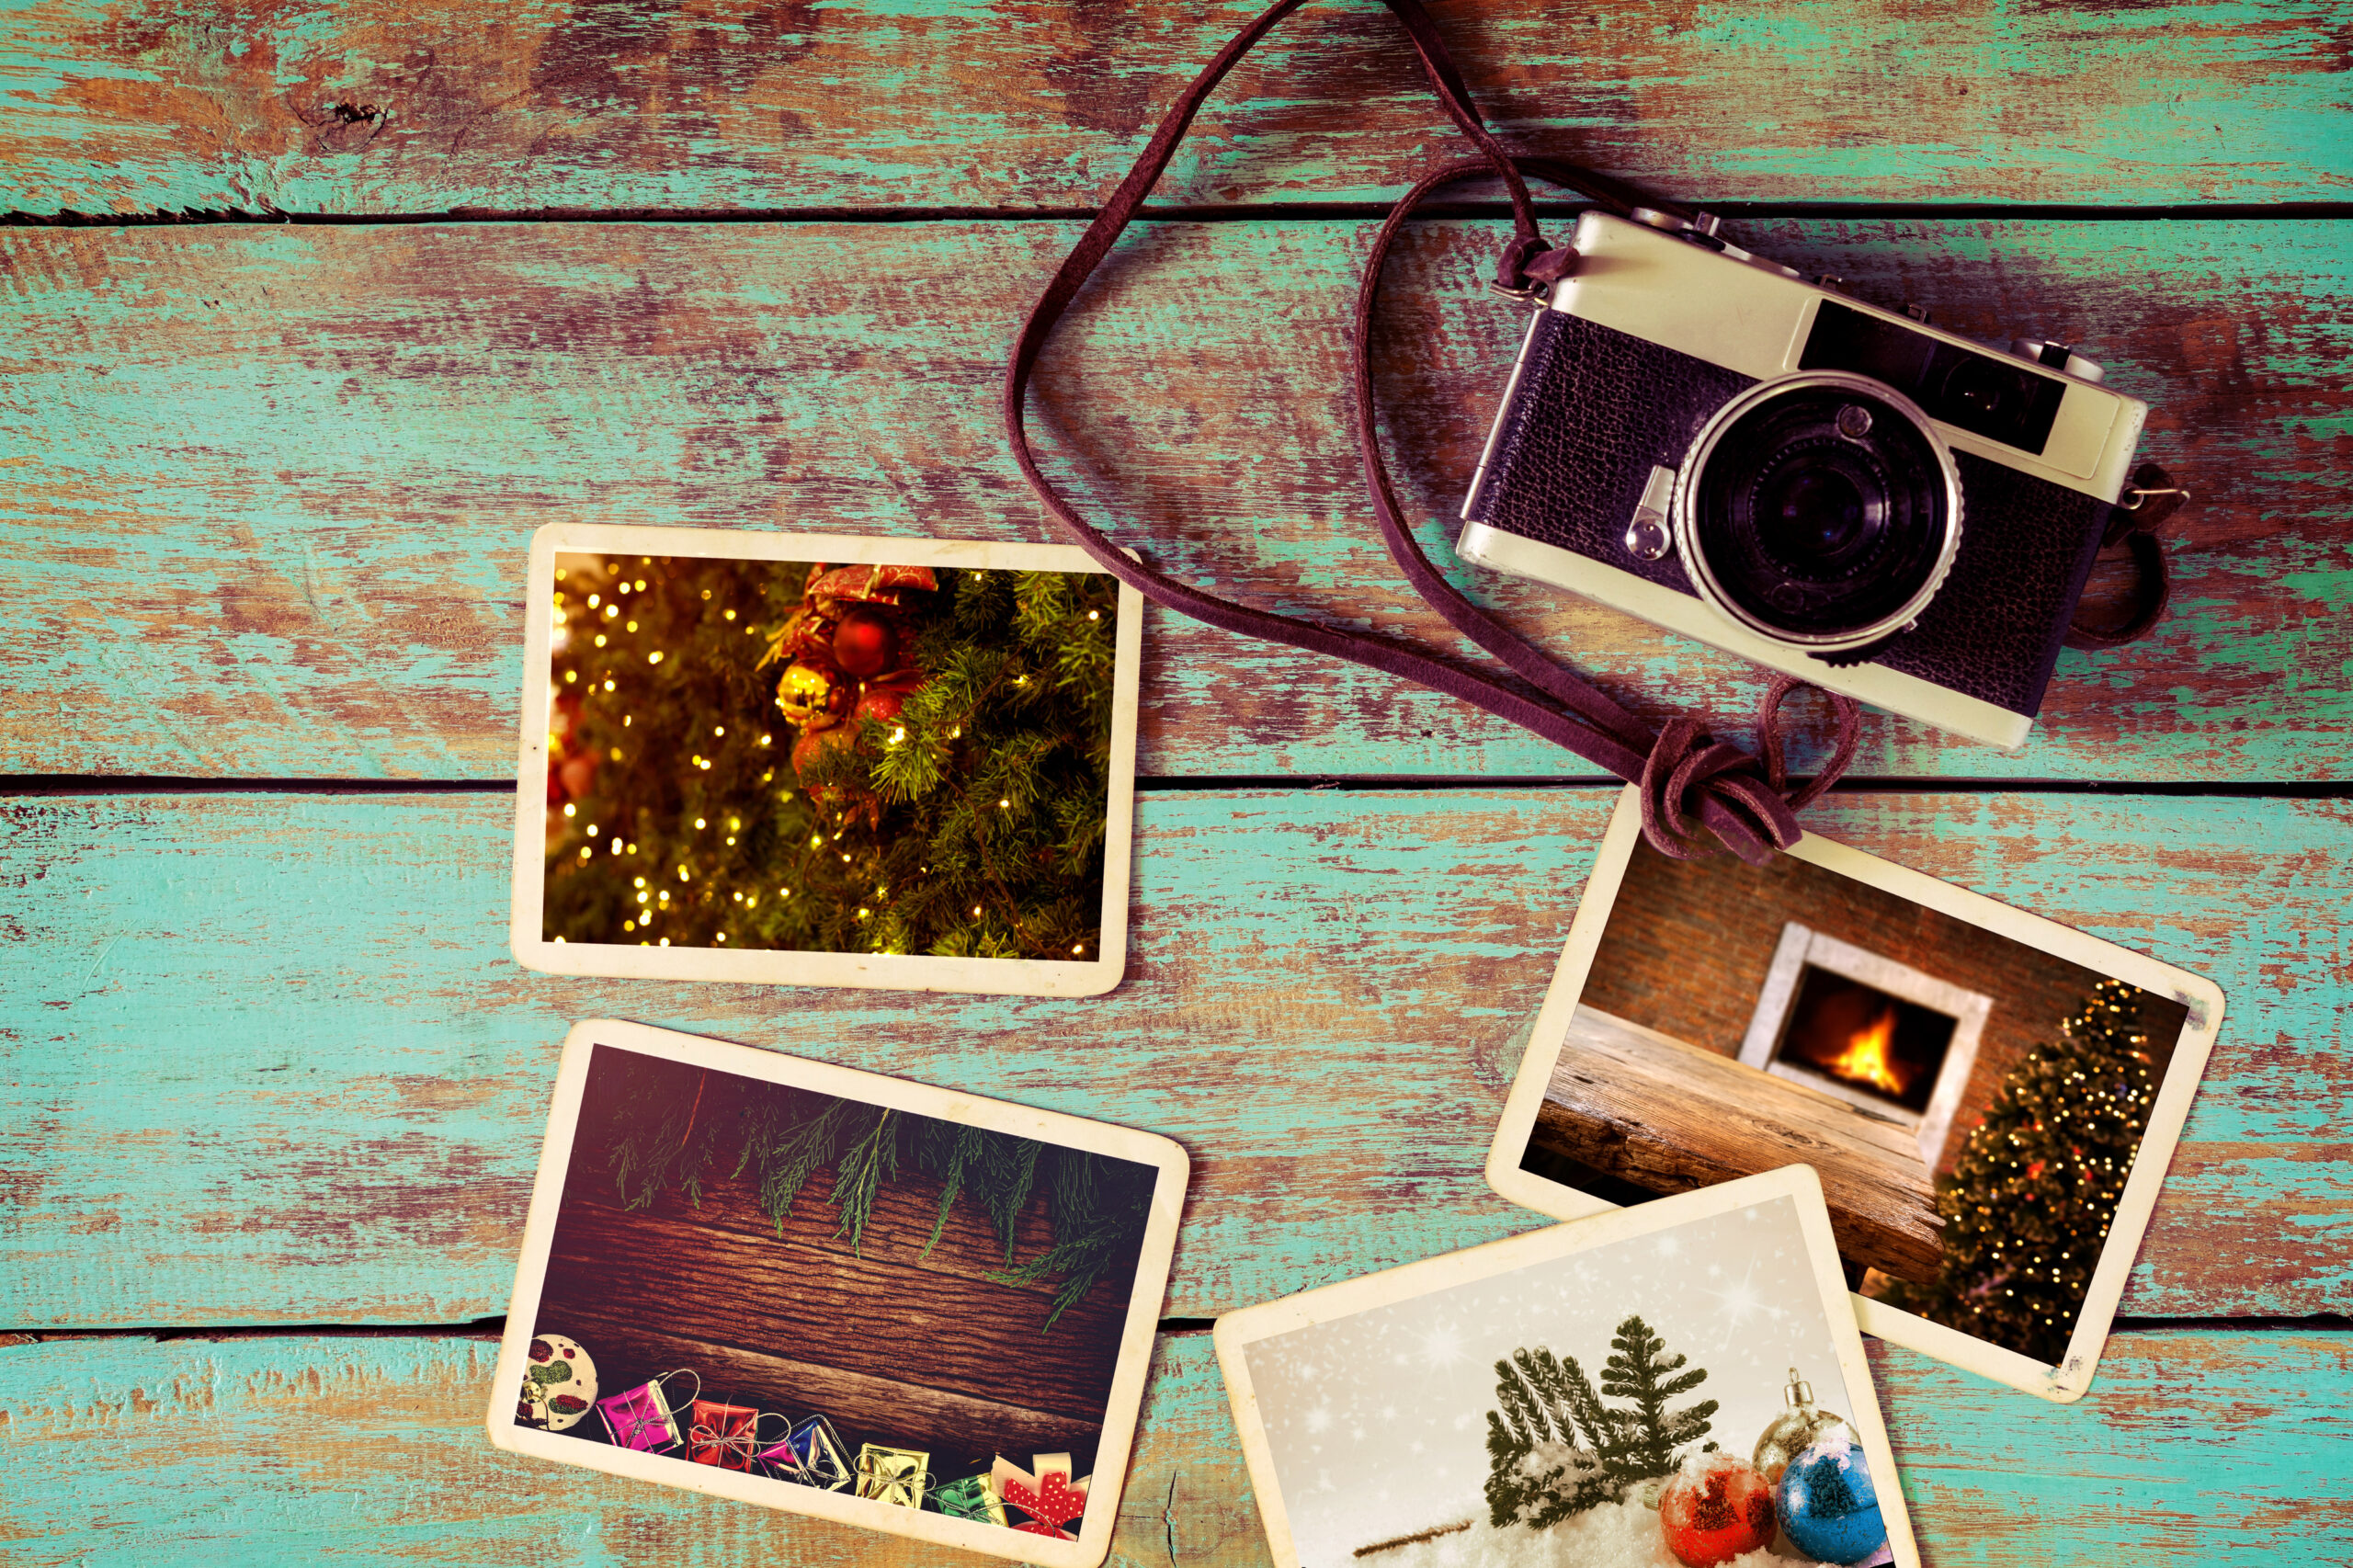 Take Great Pictures This and Every Holiday 8 tips to make your family holiday images picture perfect!